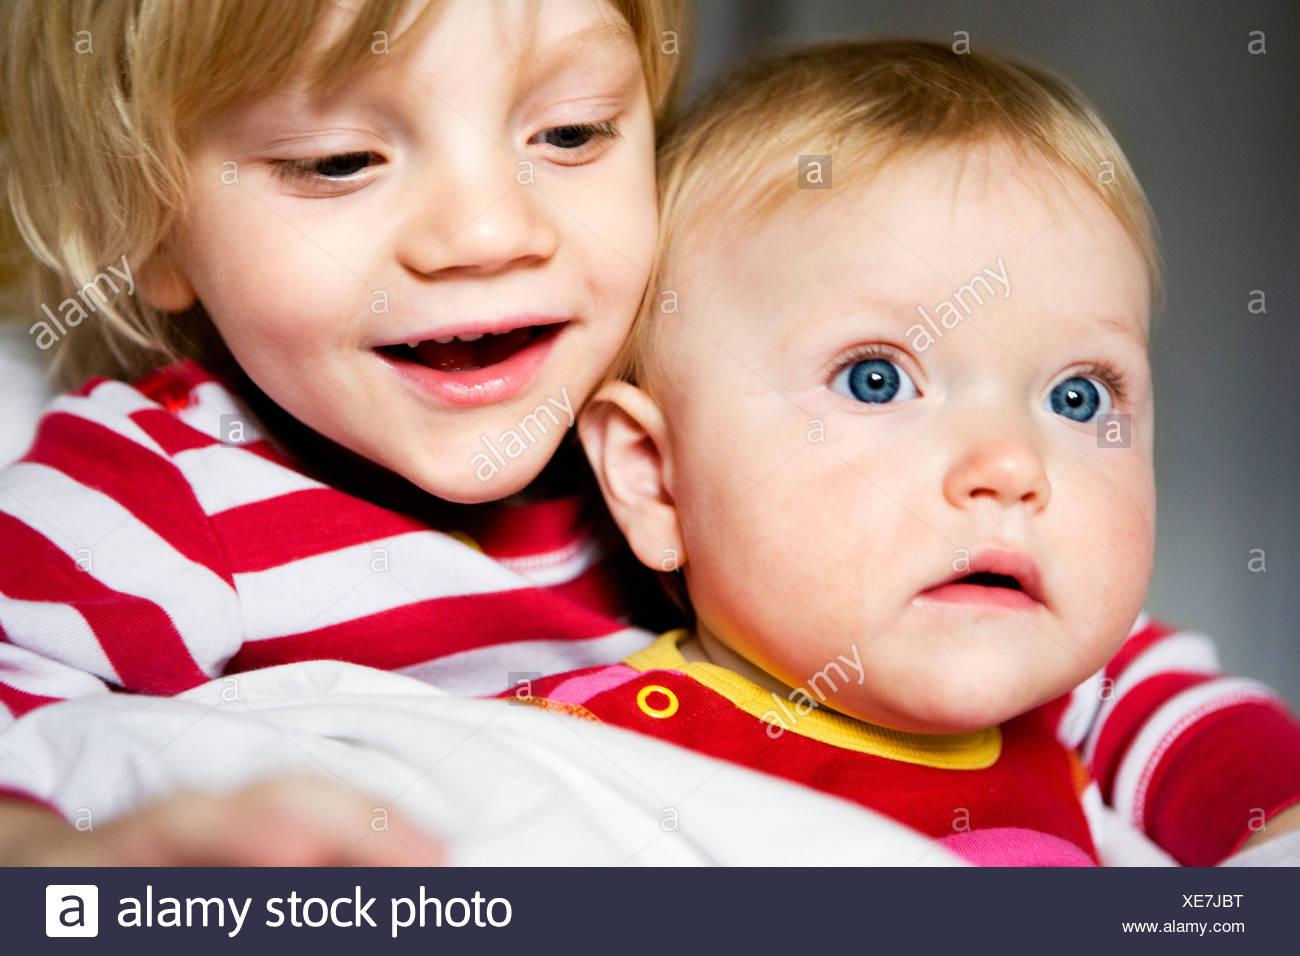 Brother and sister embracing - Stock Image